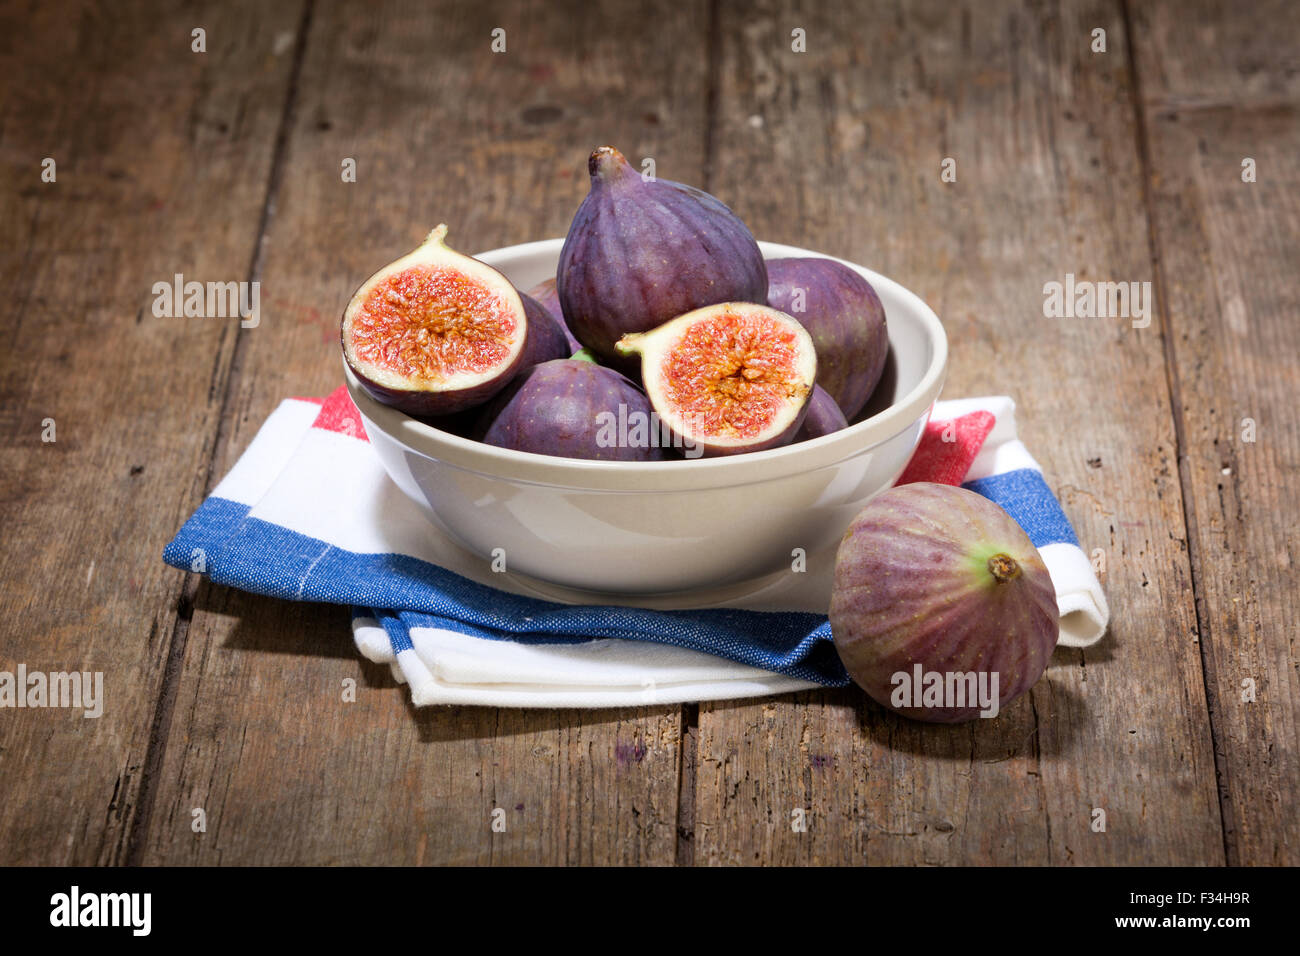 fresh figs in a bowl on dish towel on rustic wooden table - Stock Image